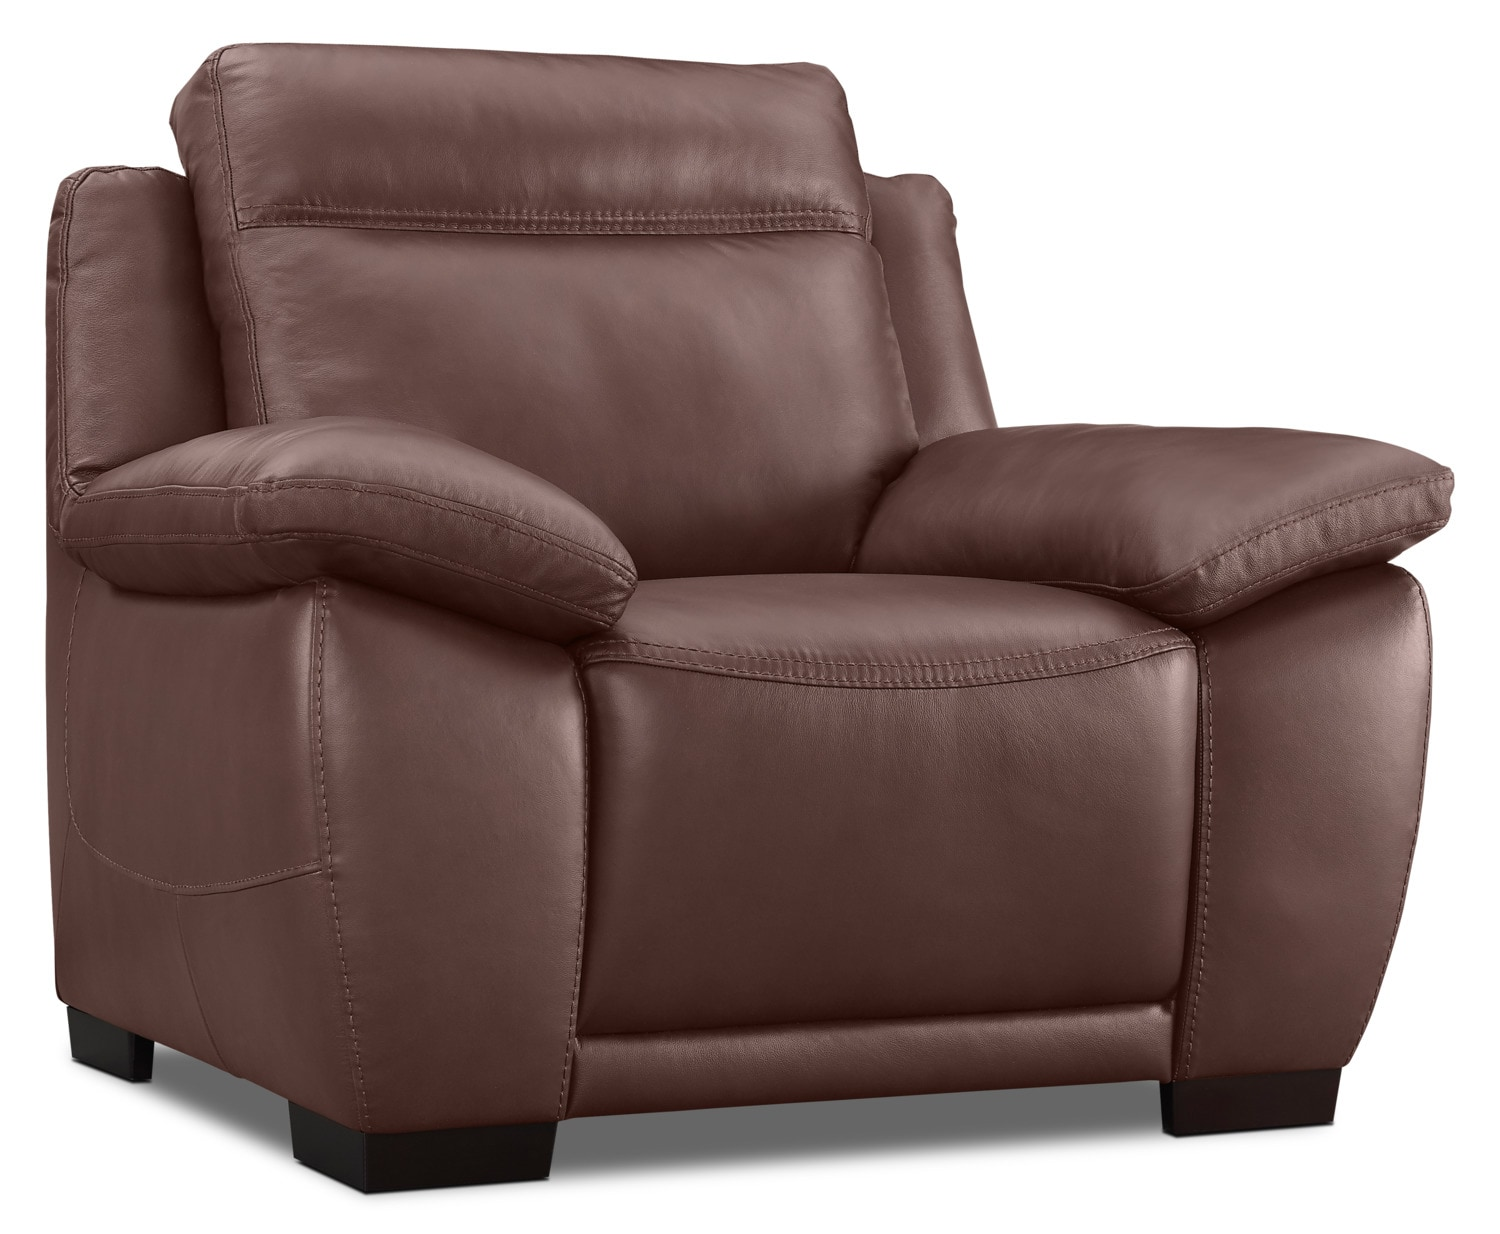 Natuzzi Editions B875 Genuine Leather Chair – Chestnut